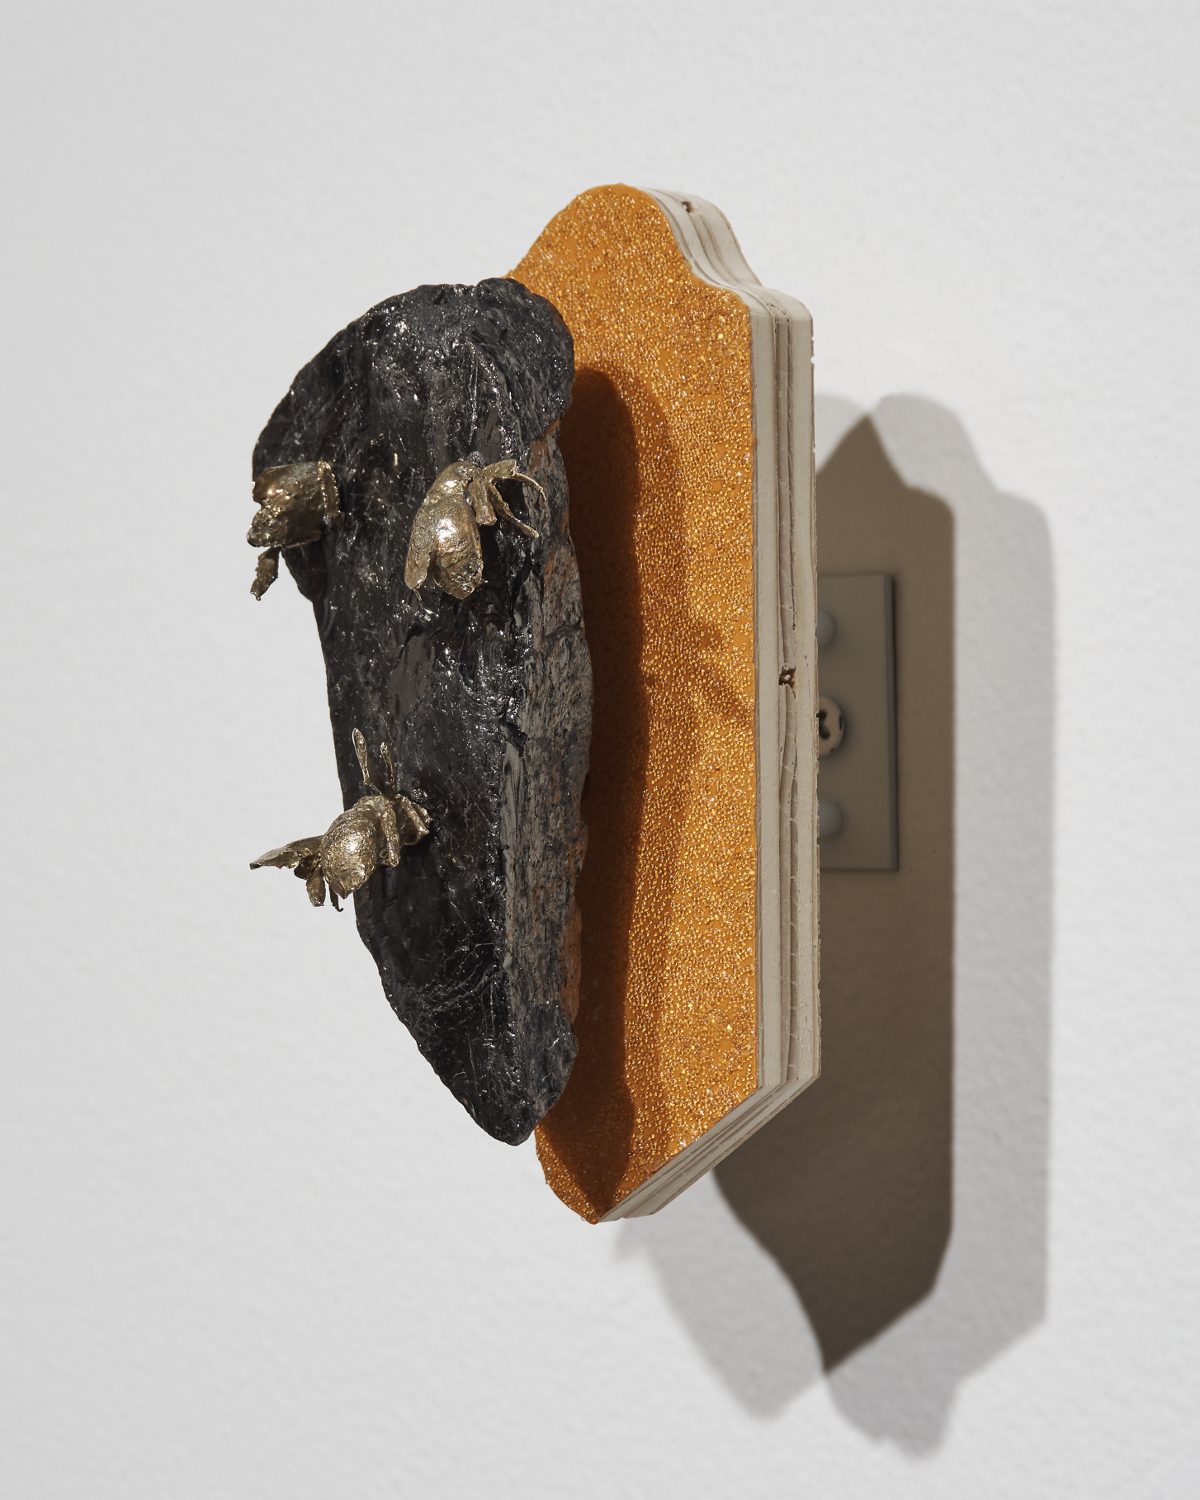 Bees-Anthracite3.jpg